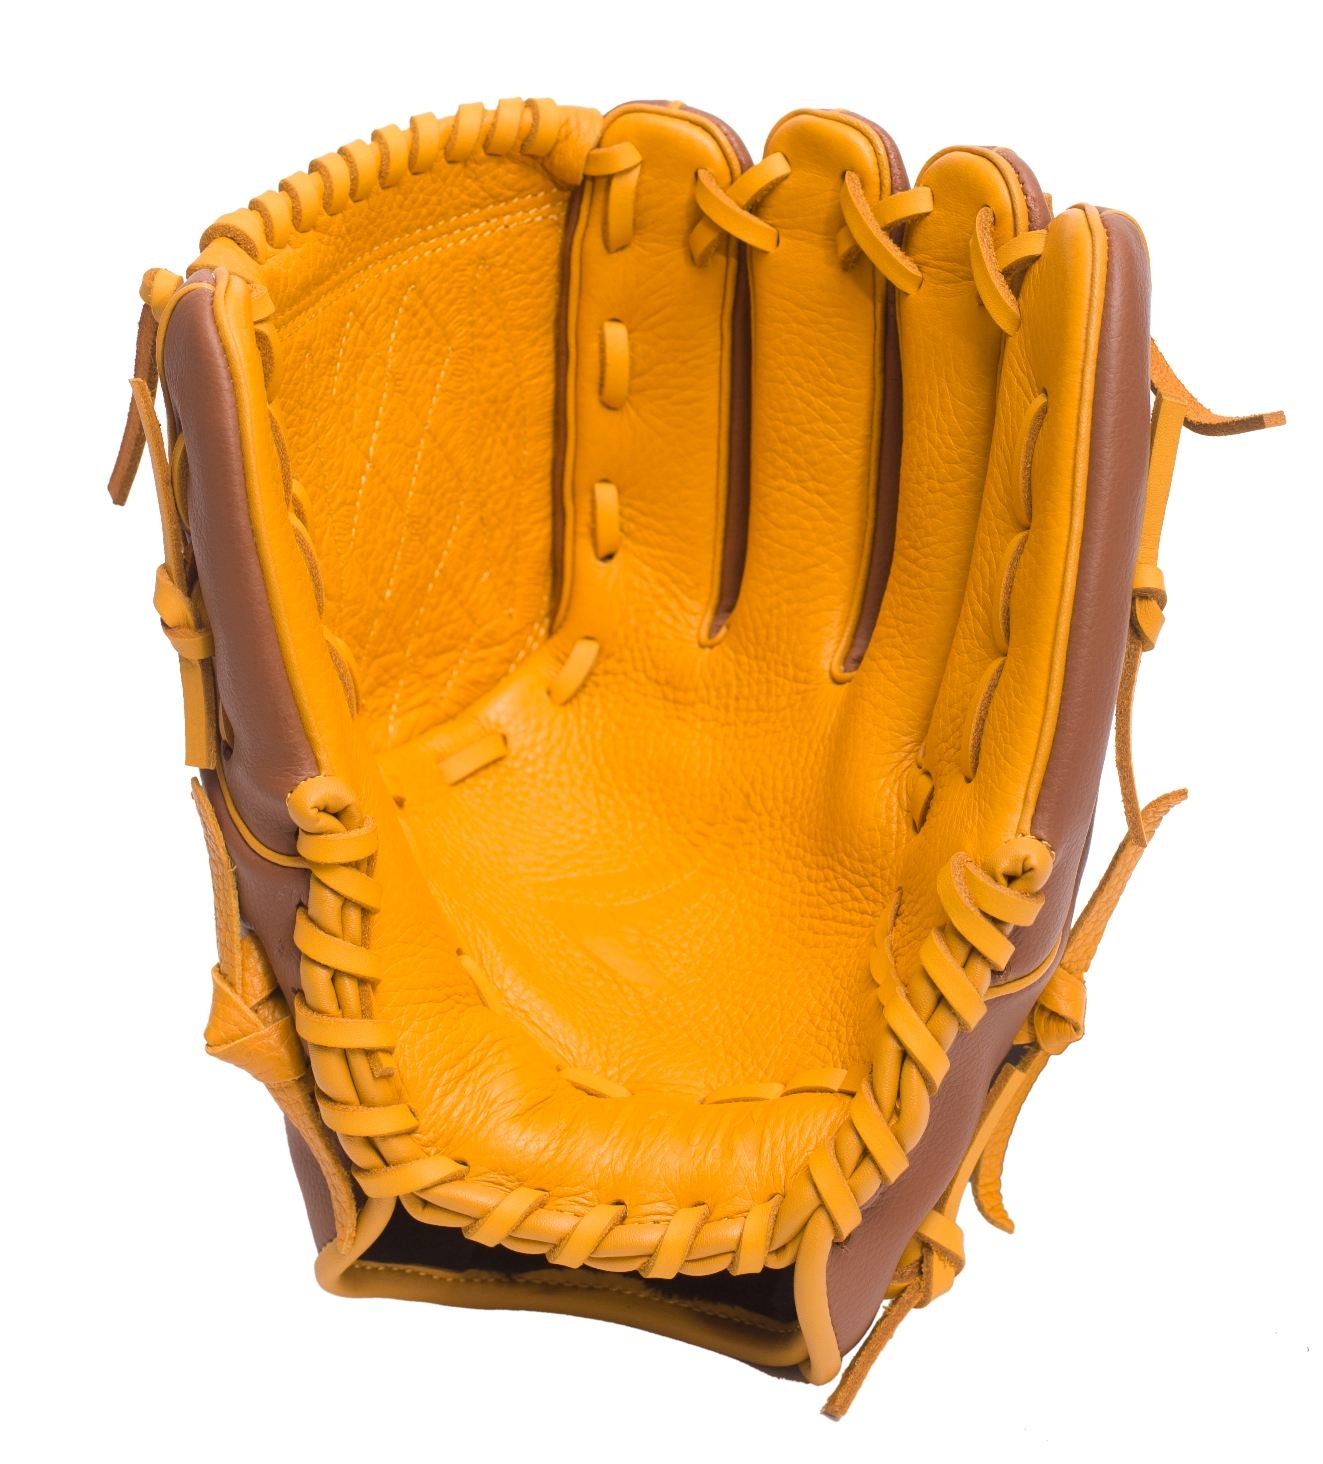 Professional Manufacturers Wholesale Adult Professional Baseball Batting Gloves